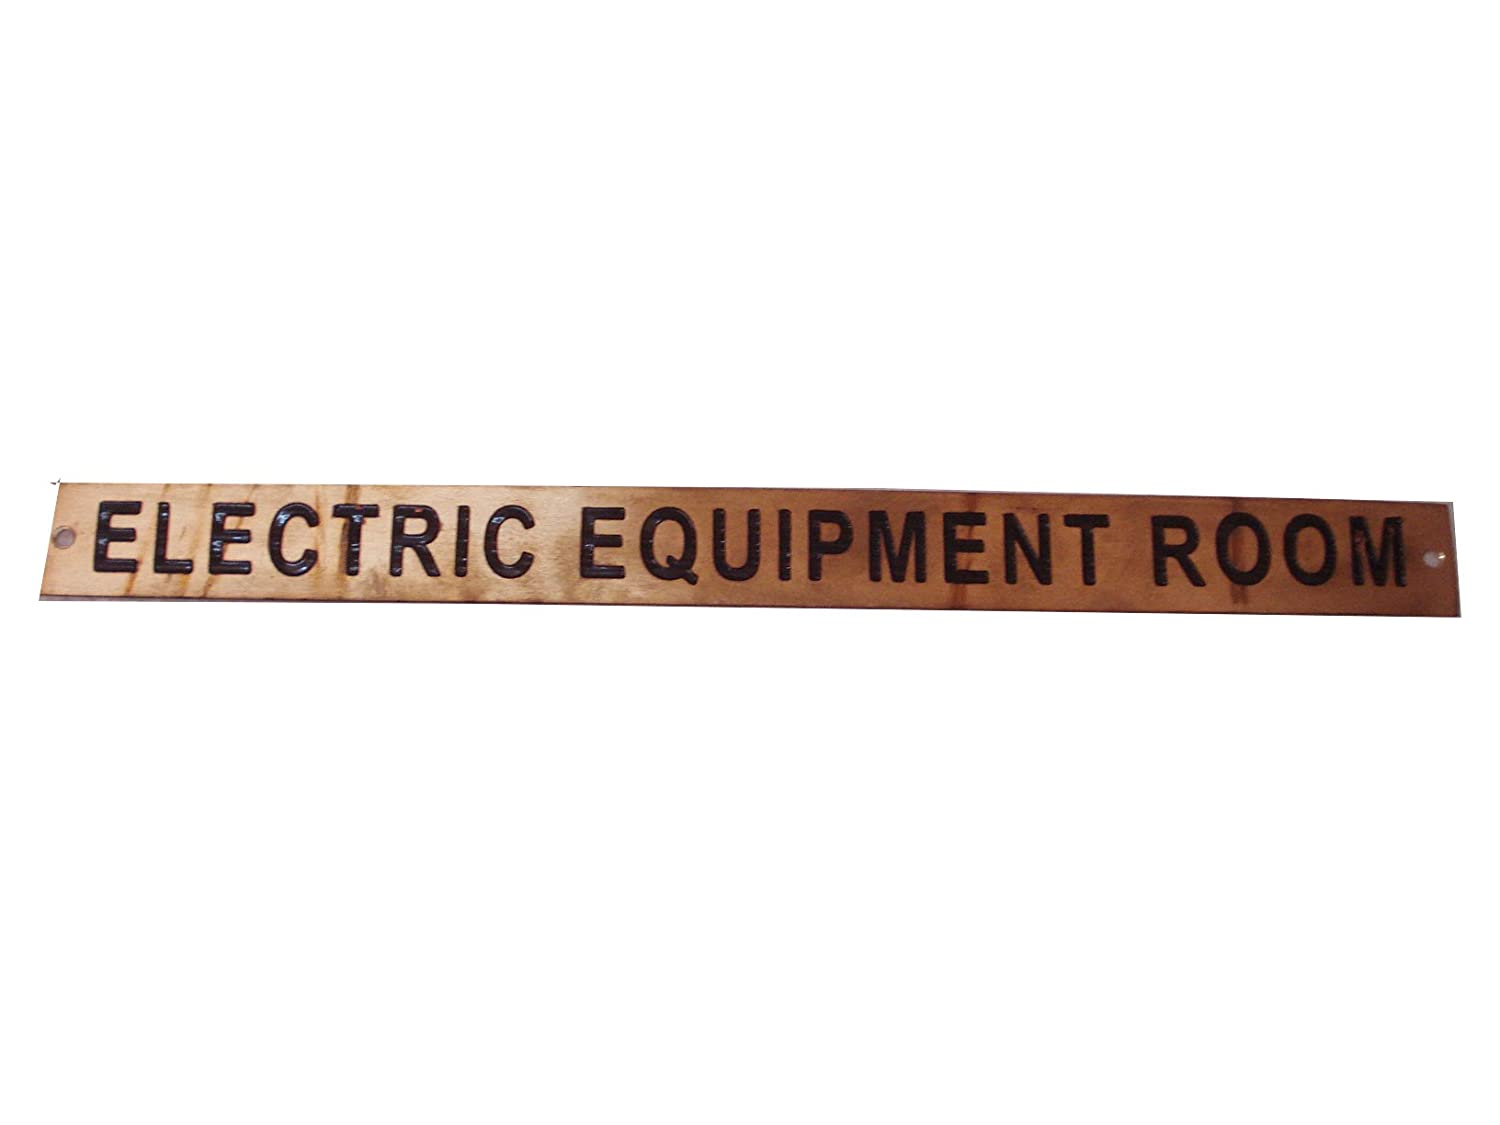 Boat//Nautical Electric Equipment Room 179 12 x 1 Inches Marine Brass Door Sign